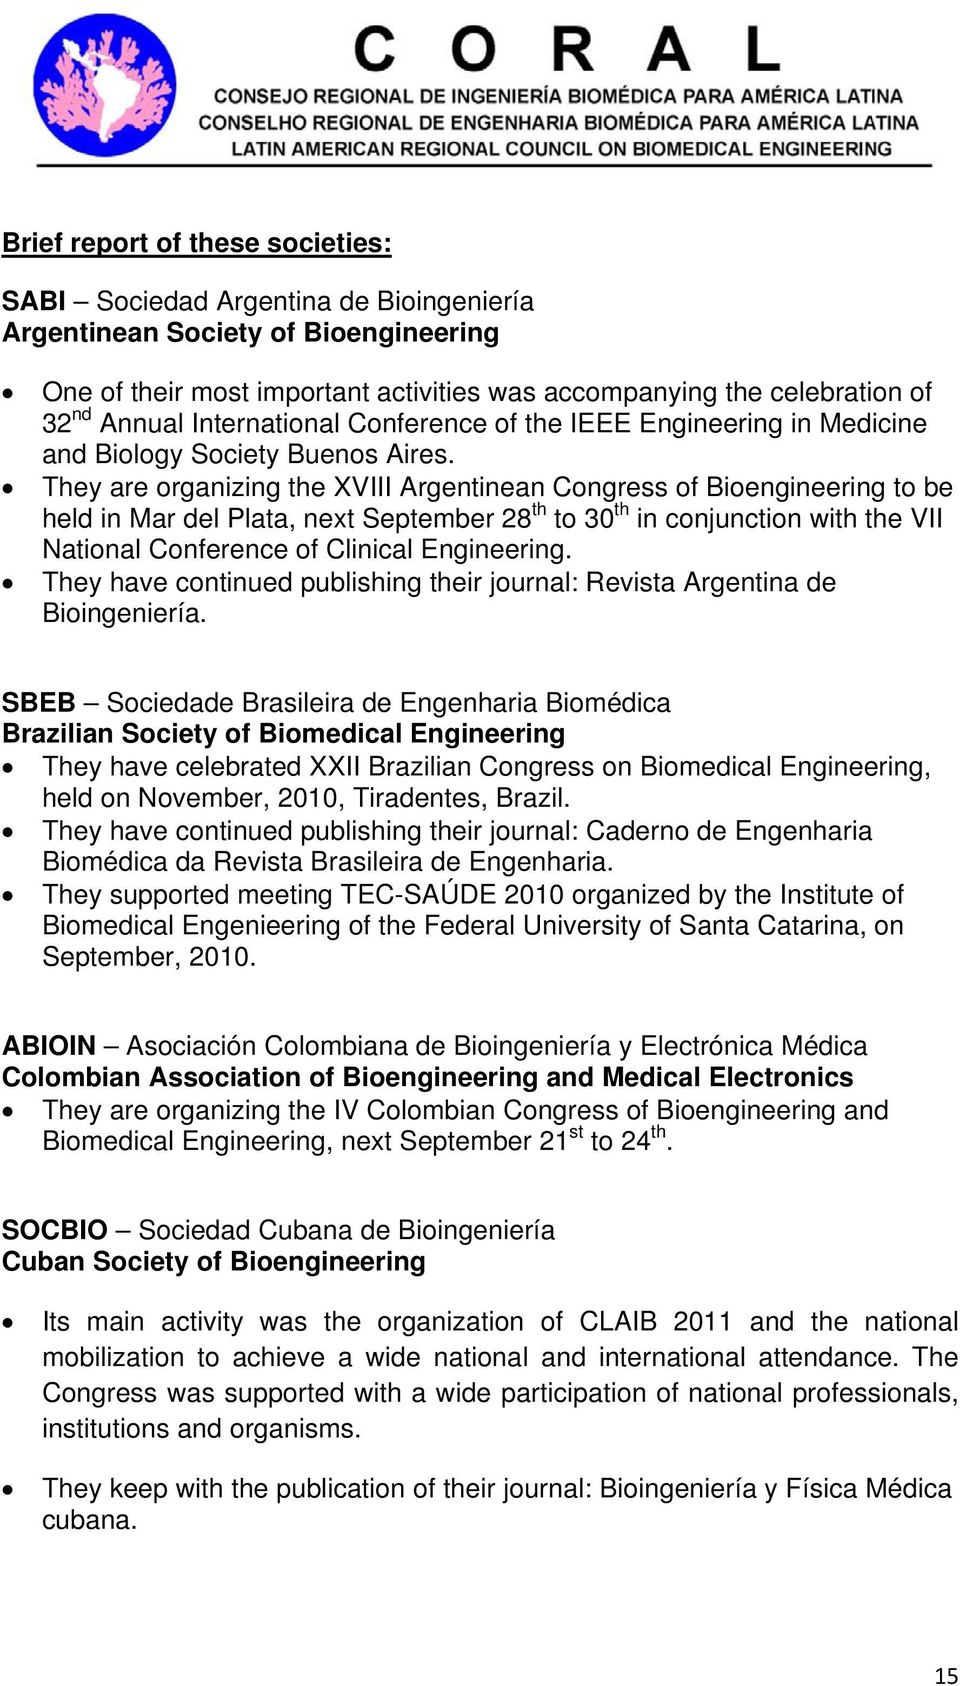 They are organizing the XVIII Argentinean Congress of Bioengineering to be held in Mar del Plata, next September 28 th to 30 th in conjunction with the VII National Conference of Clinical Engineering.